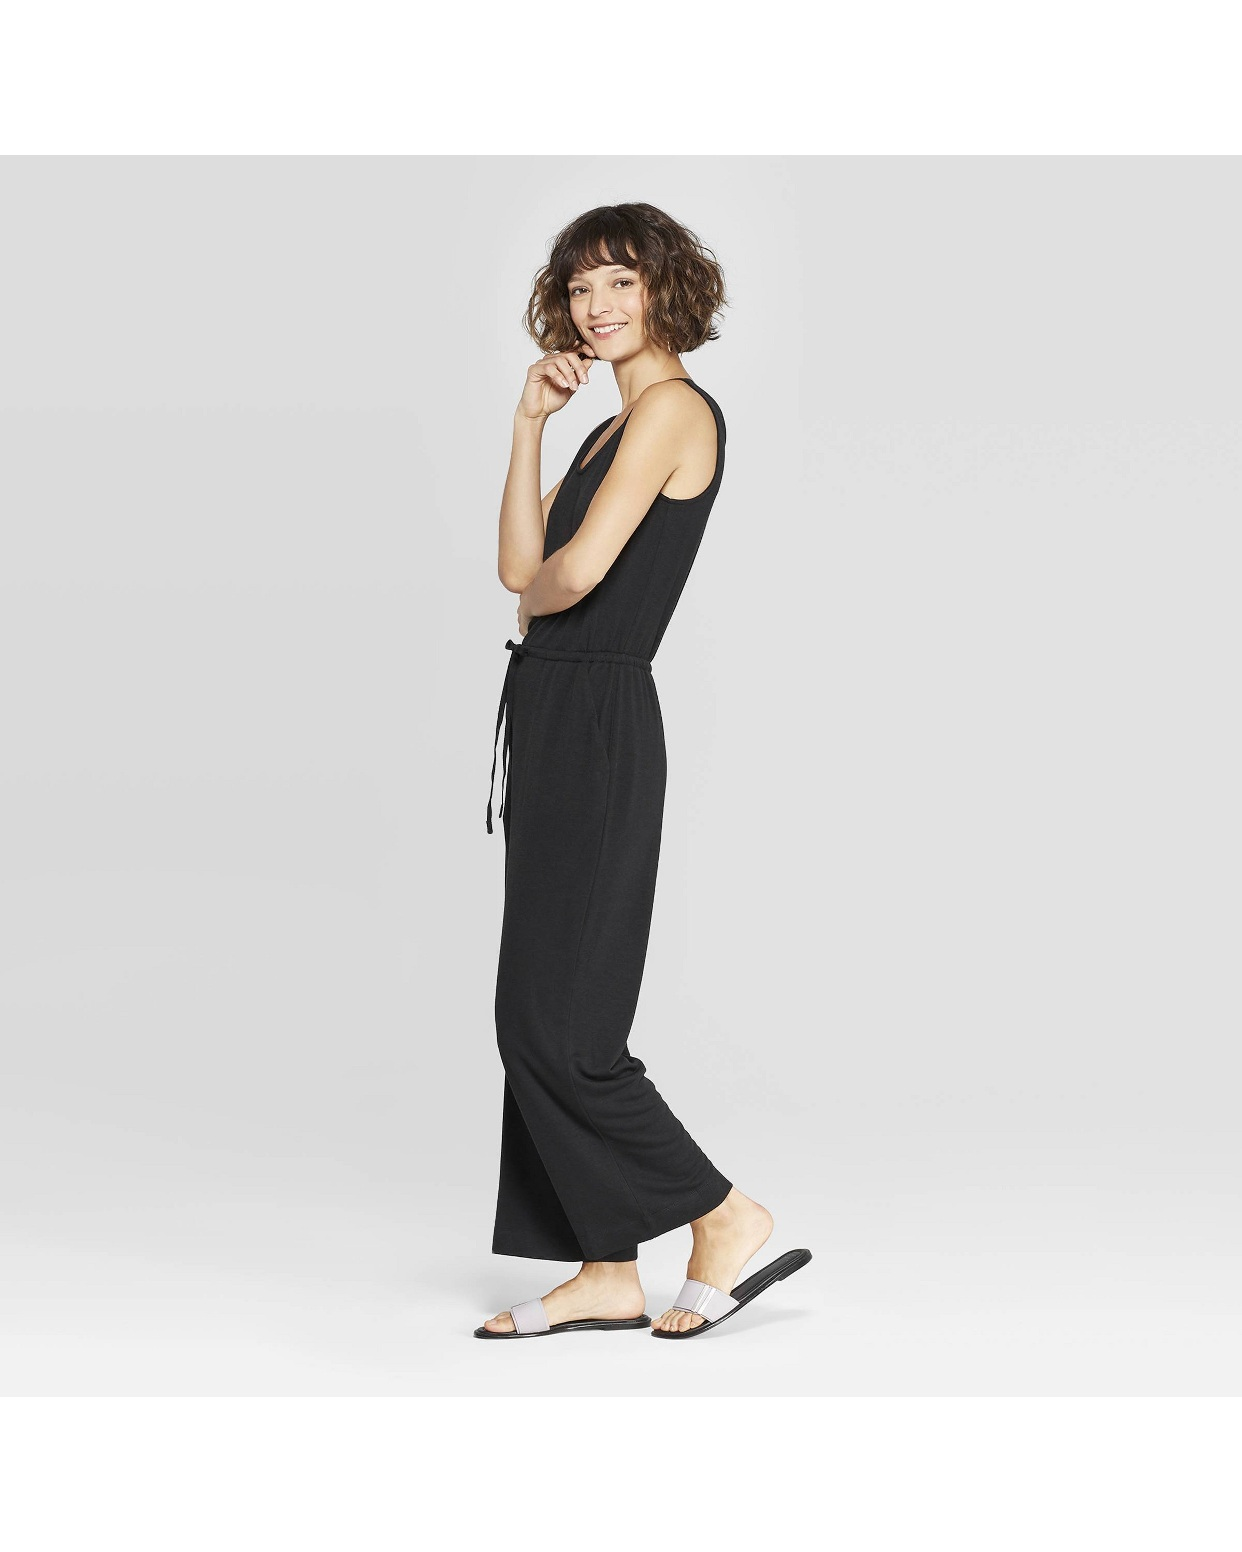 - I know, another black romper. Hah. I can't resist a black comfy romper! This one is great! Super flattering and great for around the house or running errands!Find it here.